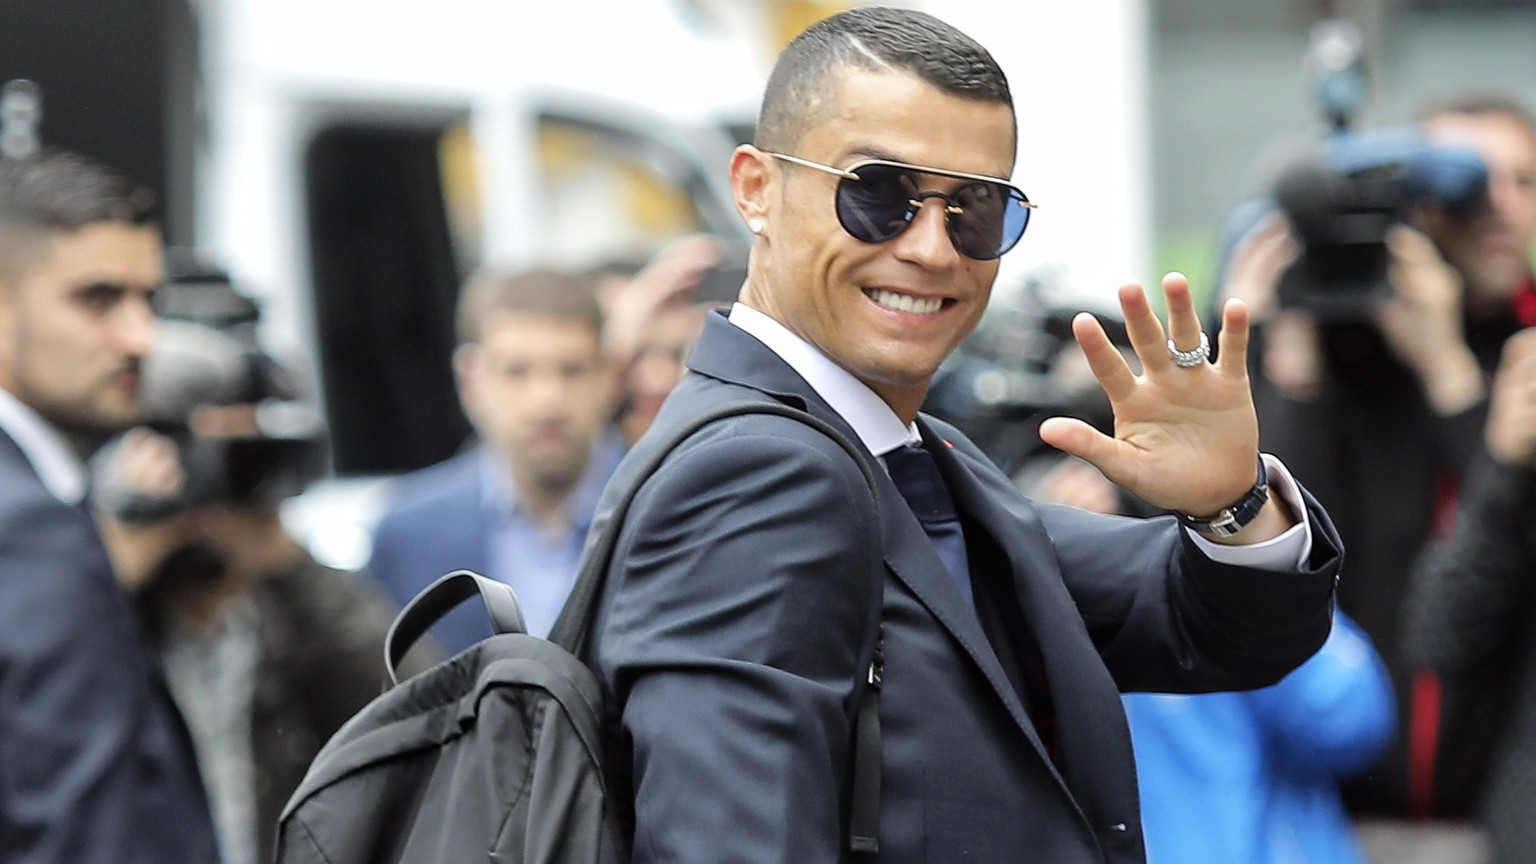 ARCHIVBILD ZUM WECHSEL VON CRISTIANO RONALDO ZU JUVENTUS TURIN --- epa06795895 Portugal's national soccer team player Cristiano Ronaldo waves to fans at Lisbon Airport before departing to Russia for the FIFA World Cup 2018 in Lisbon, Portugal, 09 June 2018. The FIFA World Cup 2018 is taking place in Russia from 14 June until 15 July 2018.  EPA/MIGUEL A. LOPES